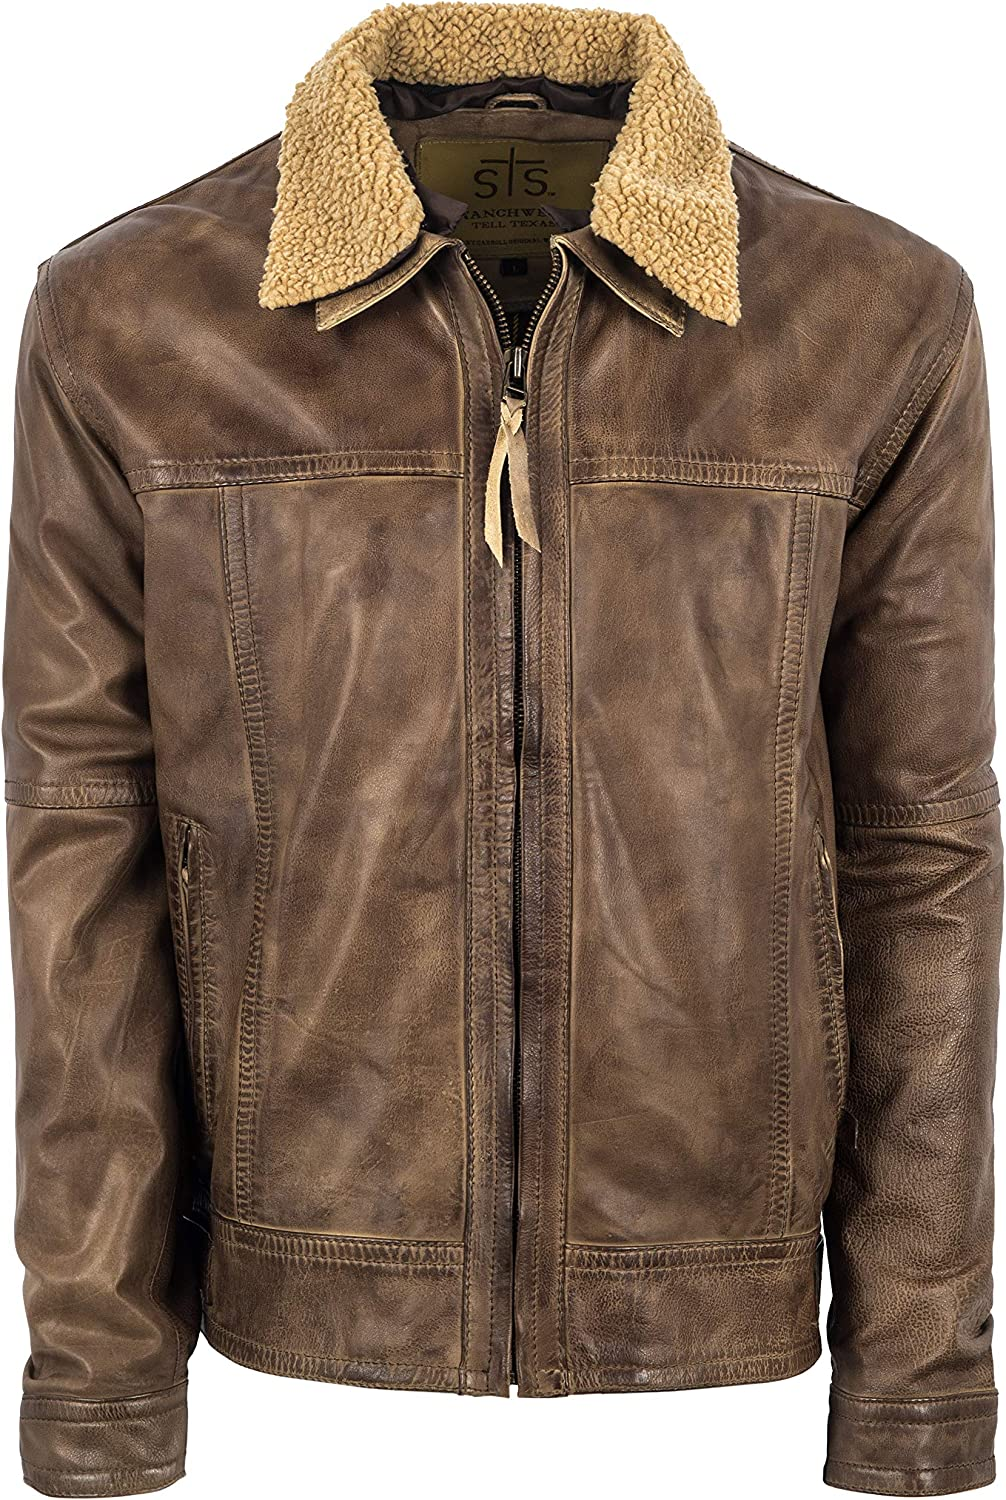 STS Ranchwear Mens Vintage Style Leather Jacket Cream Beige, Small